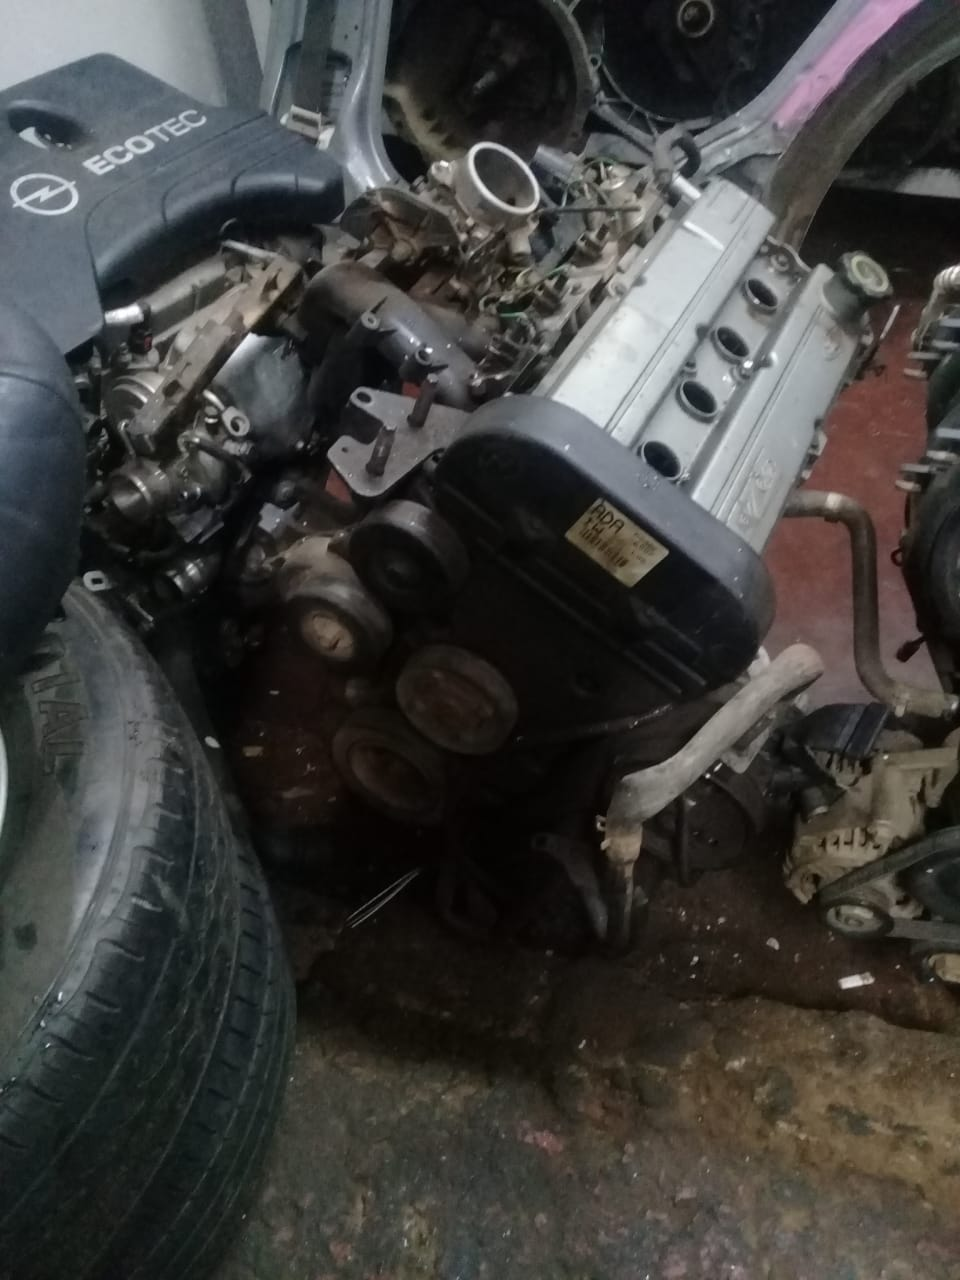 2005 Ford 16v Zetec Engine - Clearance Sale